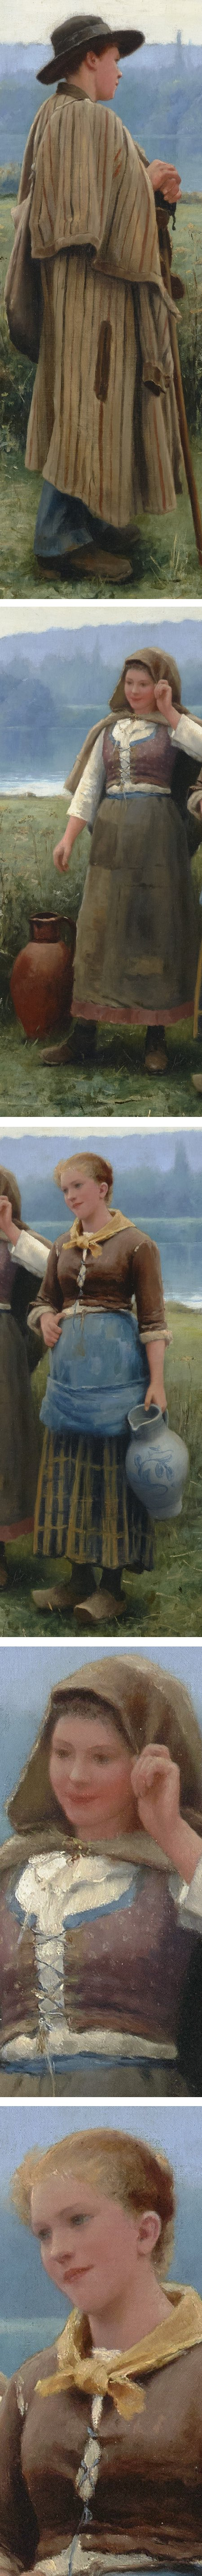 An Idle Moment, Daniel Ridgway Knight, oil on canvas